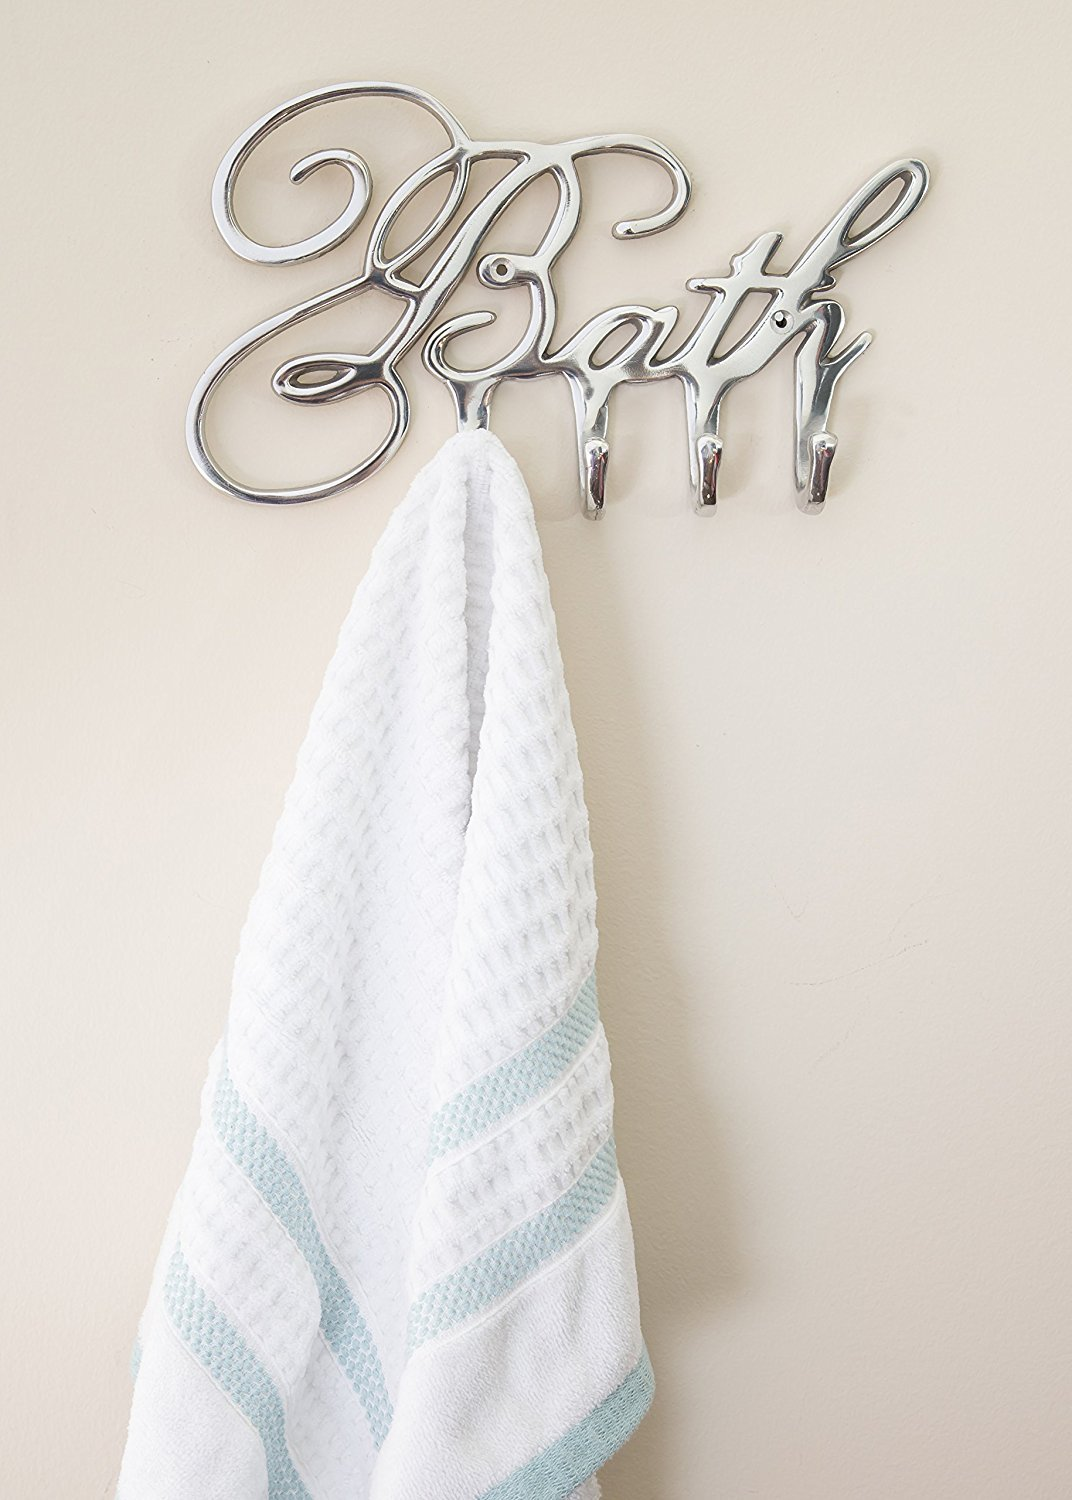 Decorative Bath Towel Hooks Bathroom Hanger By Comfify | Aluminum Wall Hooks  Rack For Towels, Robes, Bathroom Accessories | Luxury Font Design, ...